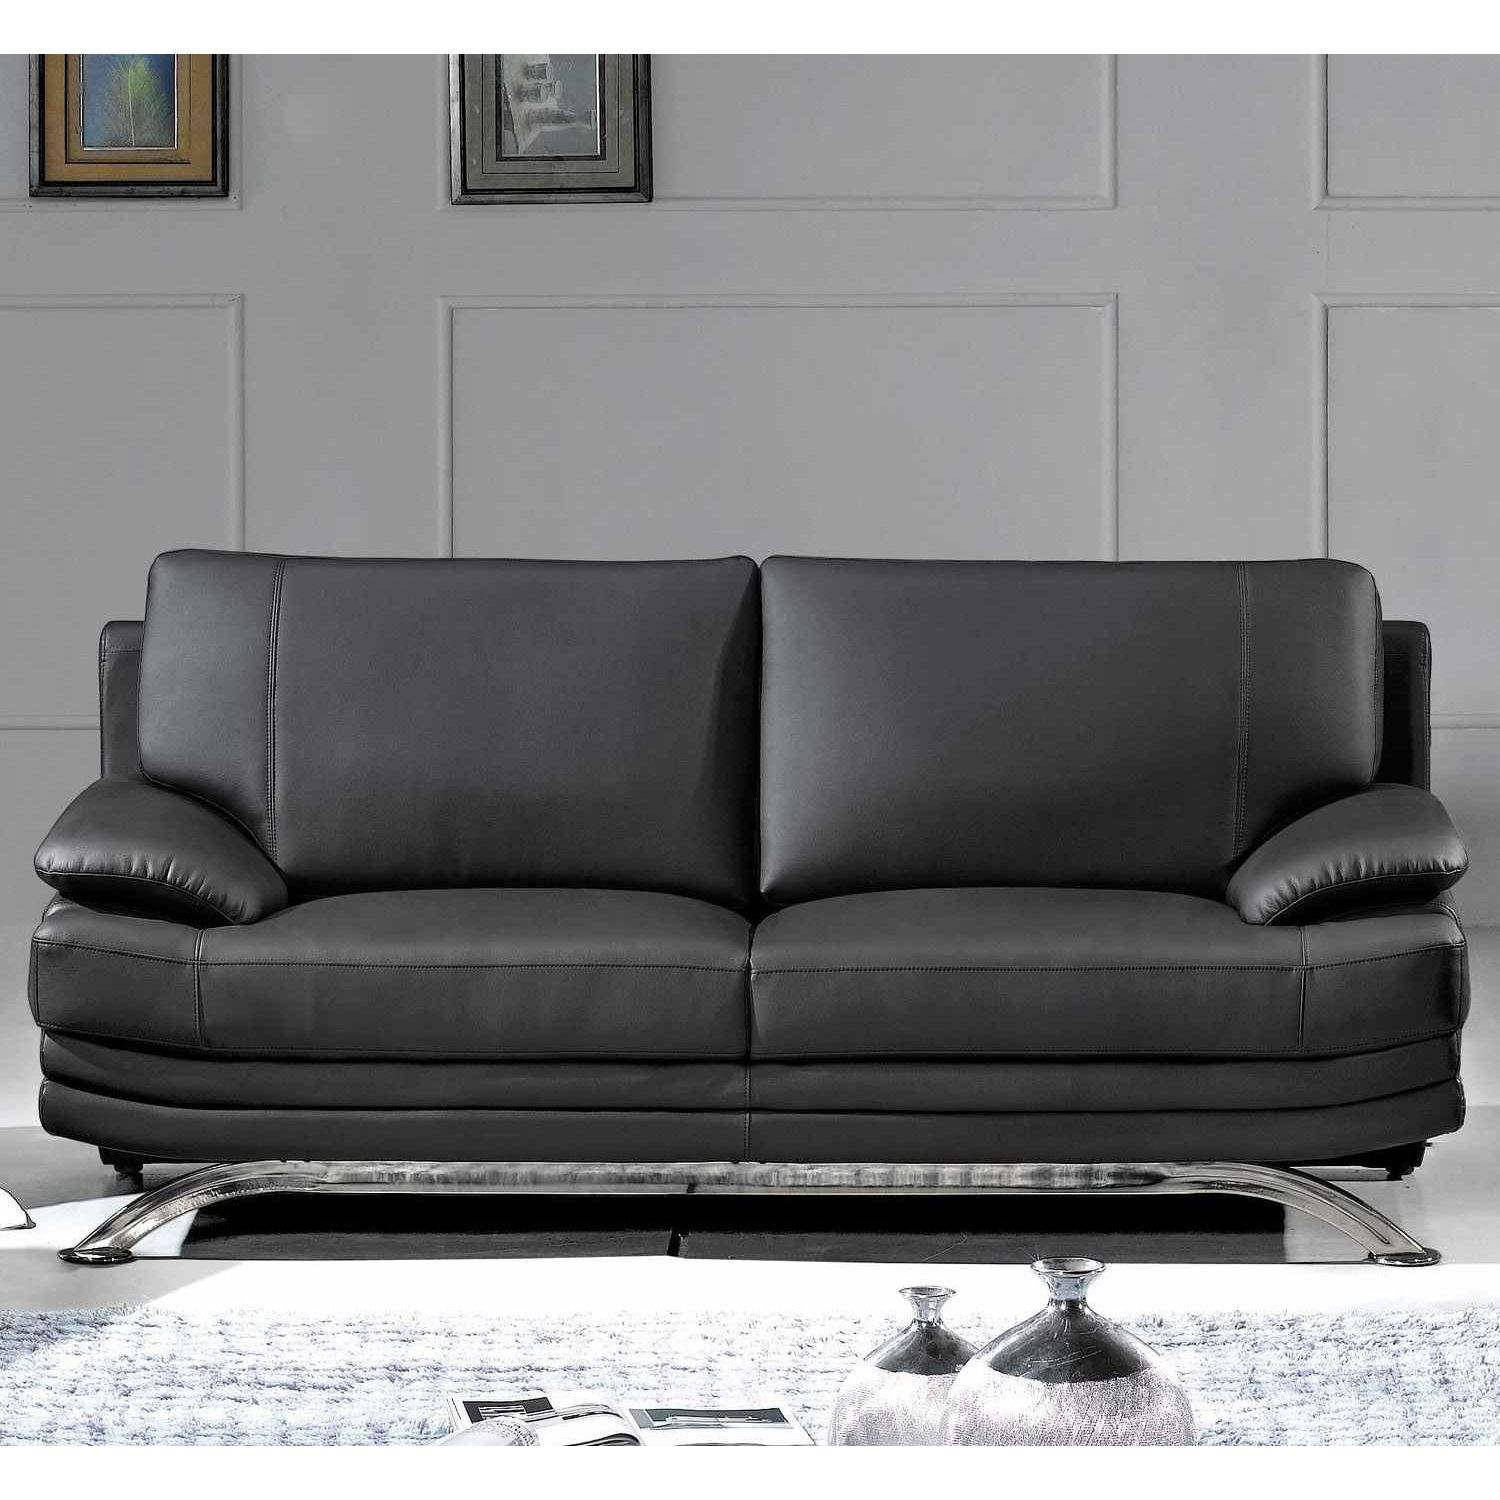 Deco in paris canape cuir noir 3 places romeo can romeo 3p pu noir - Canape cuir noir 3 places ...